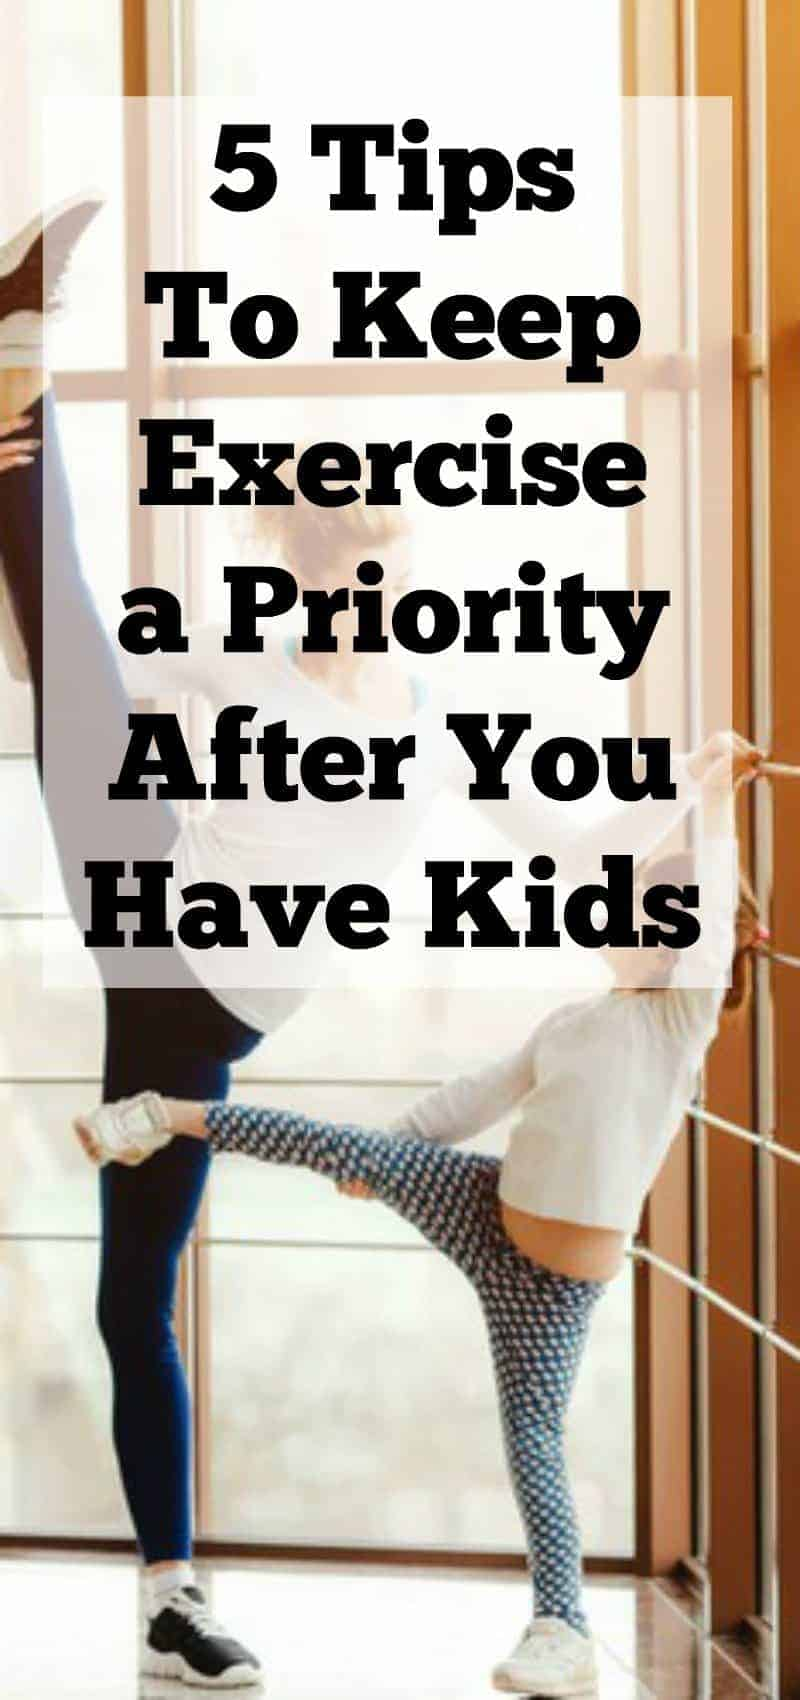 5 Tips to Keep Exercise a Priority after you have kids.